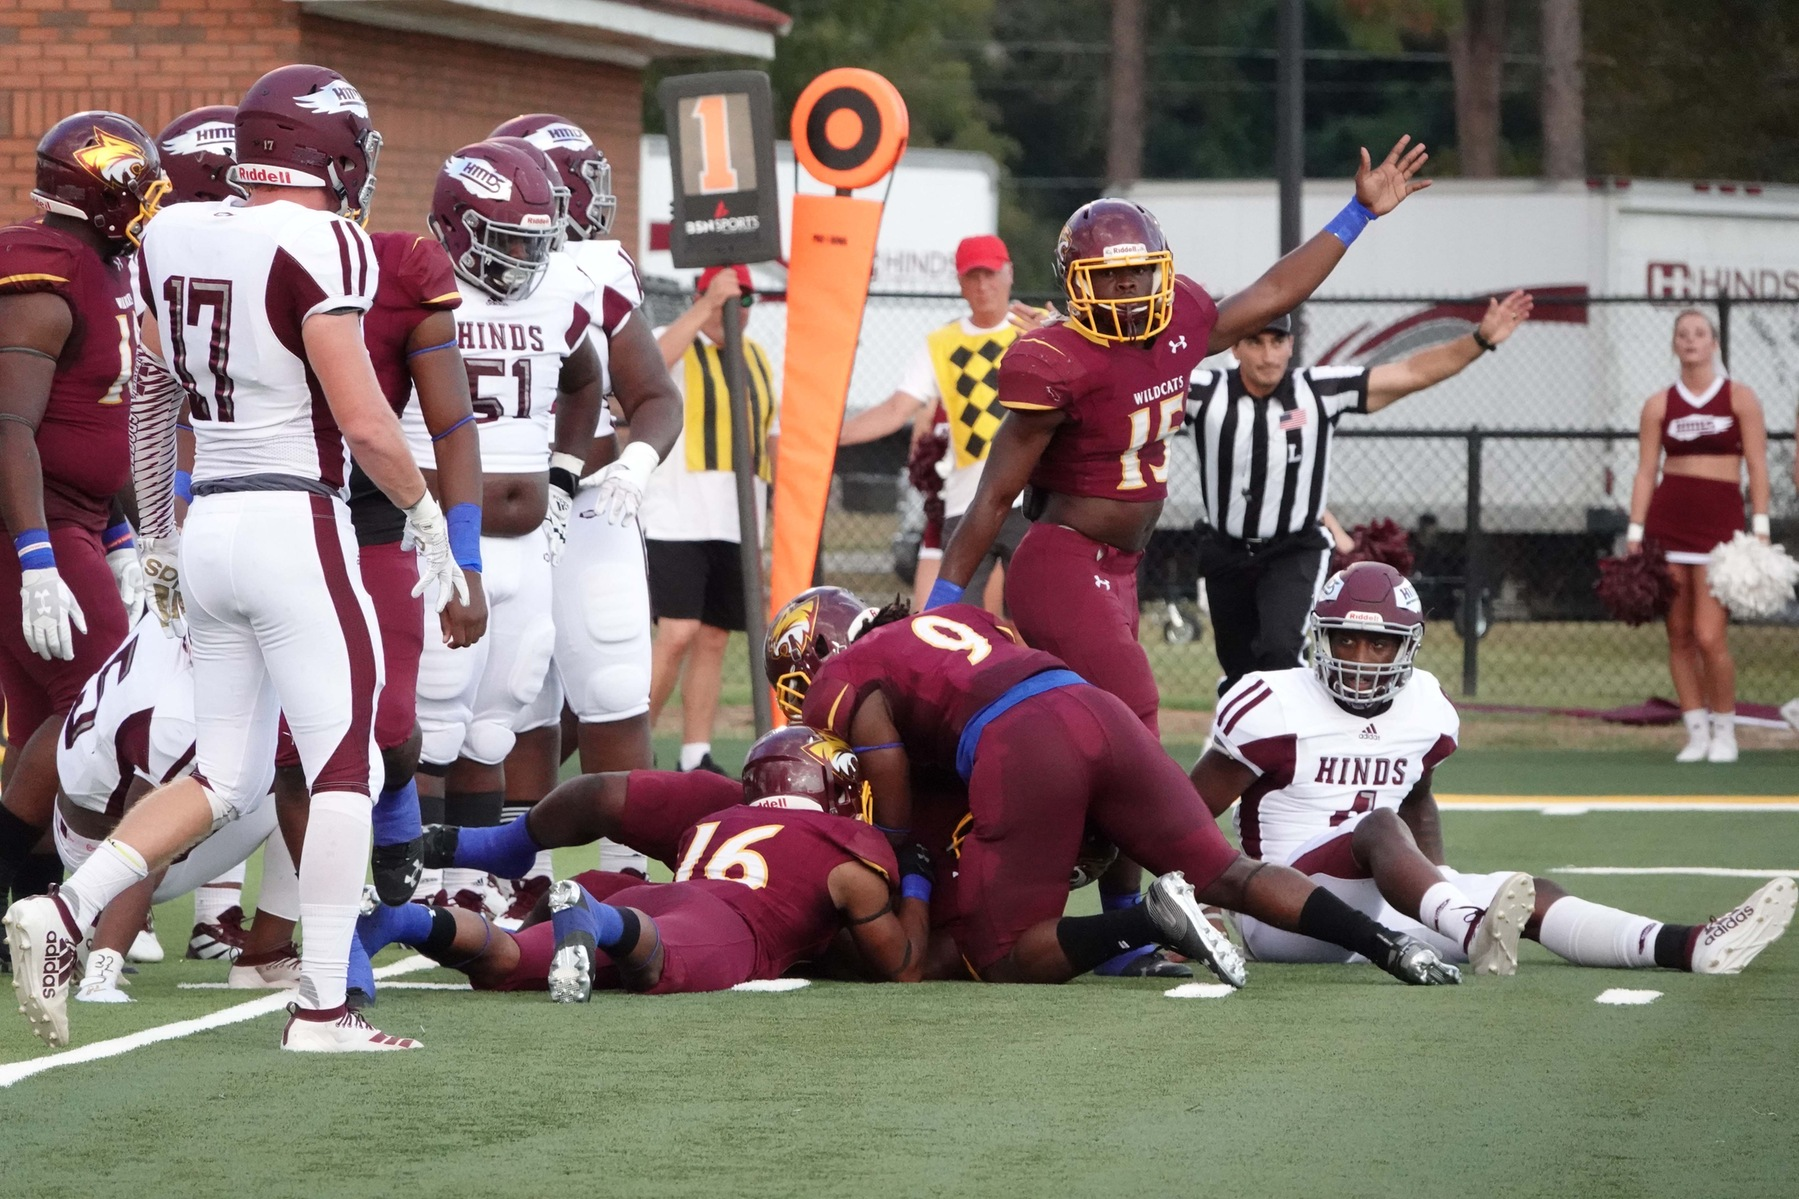 Pearl River struggles against No. 16 Hinds